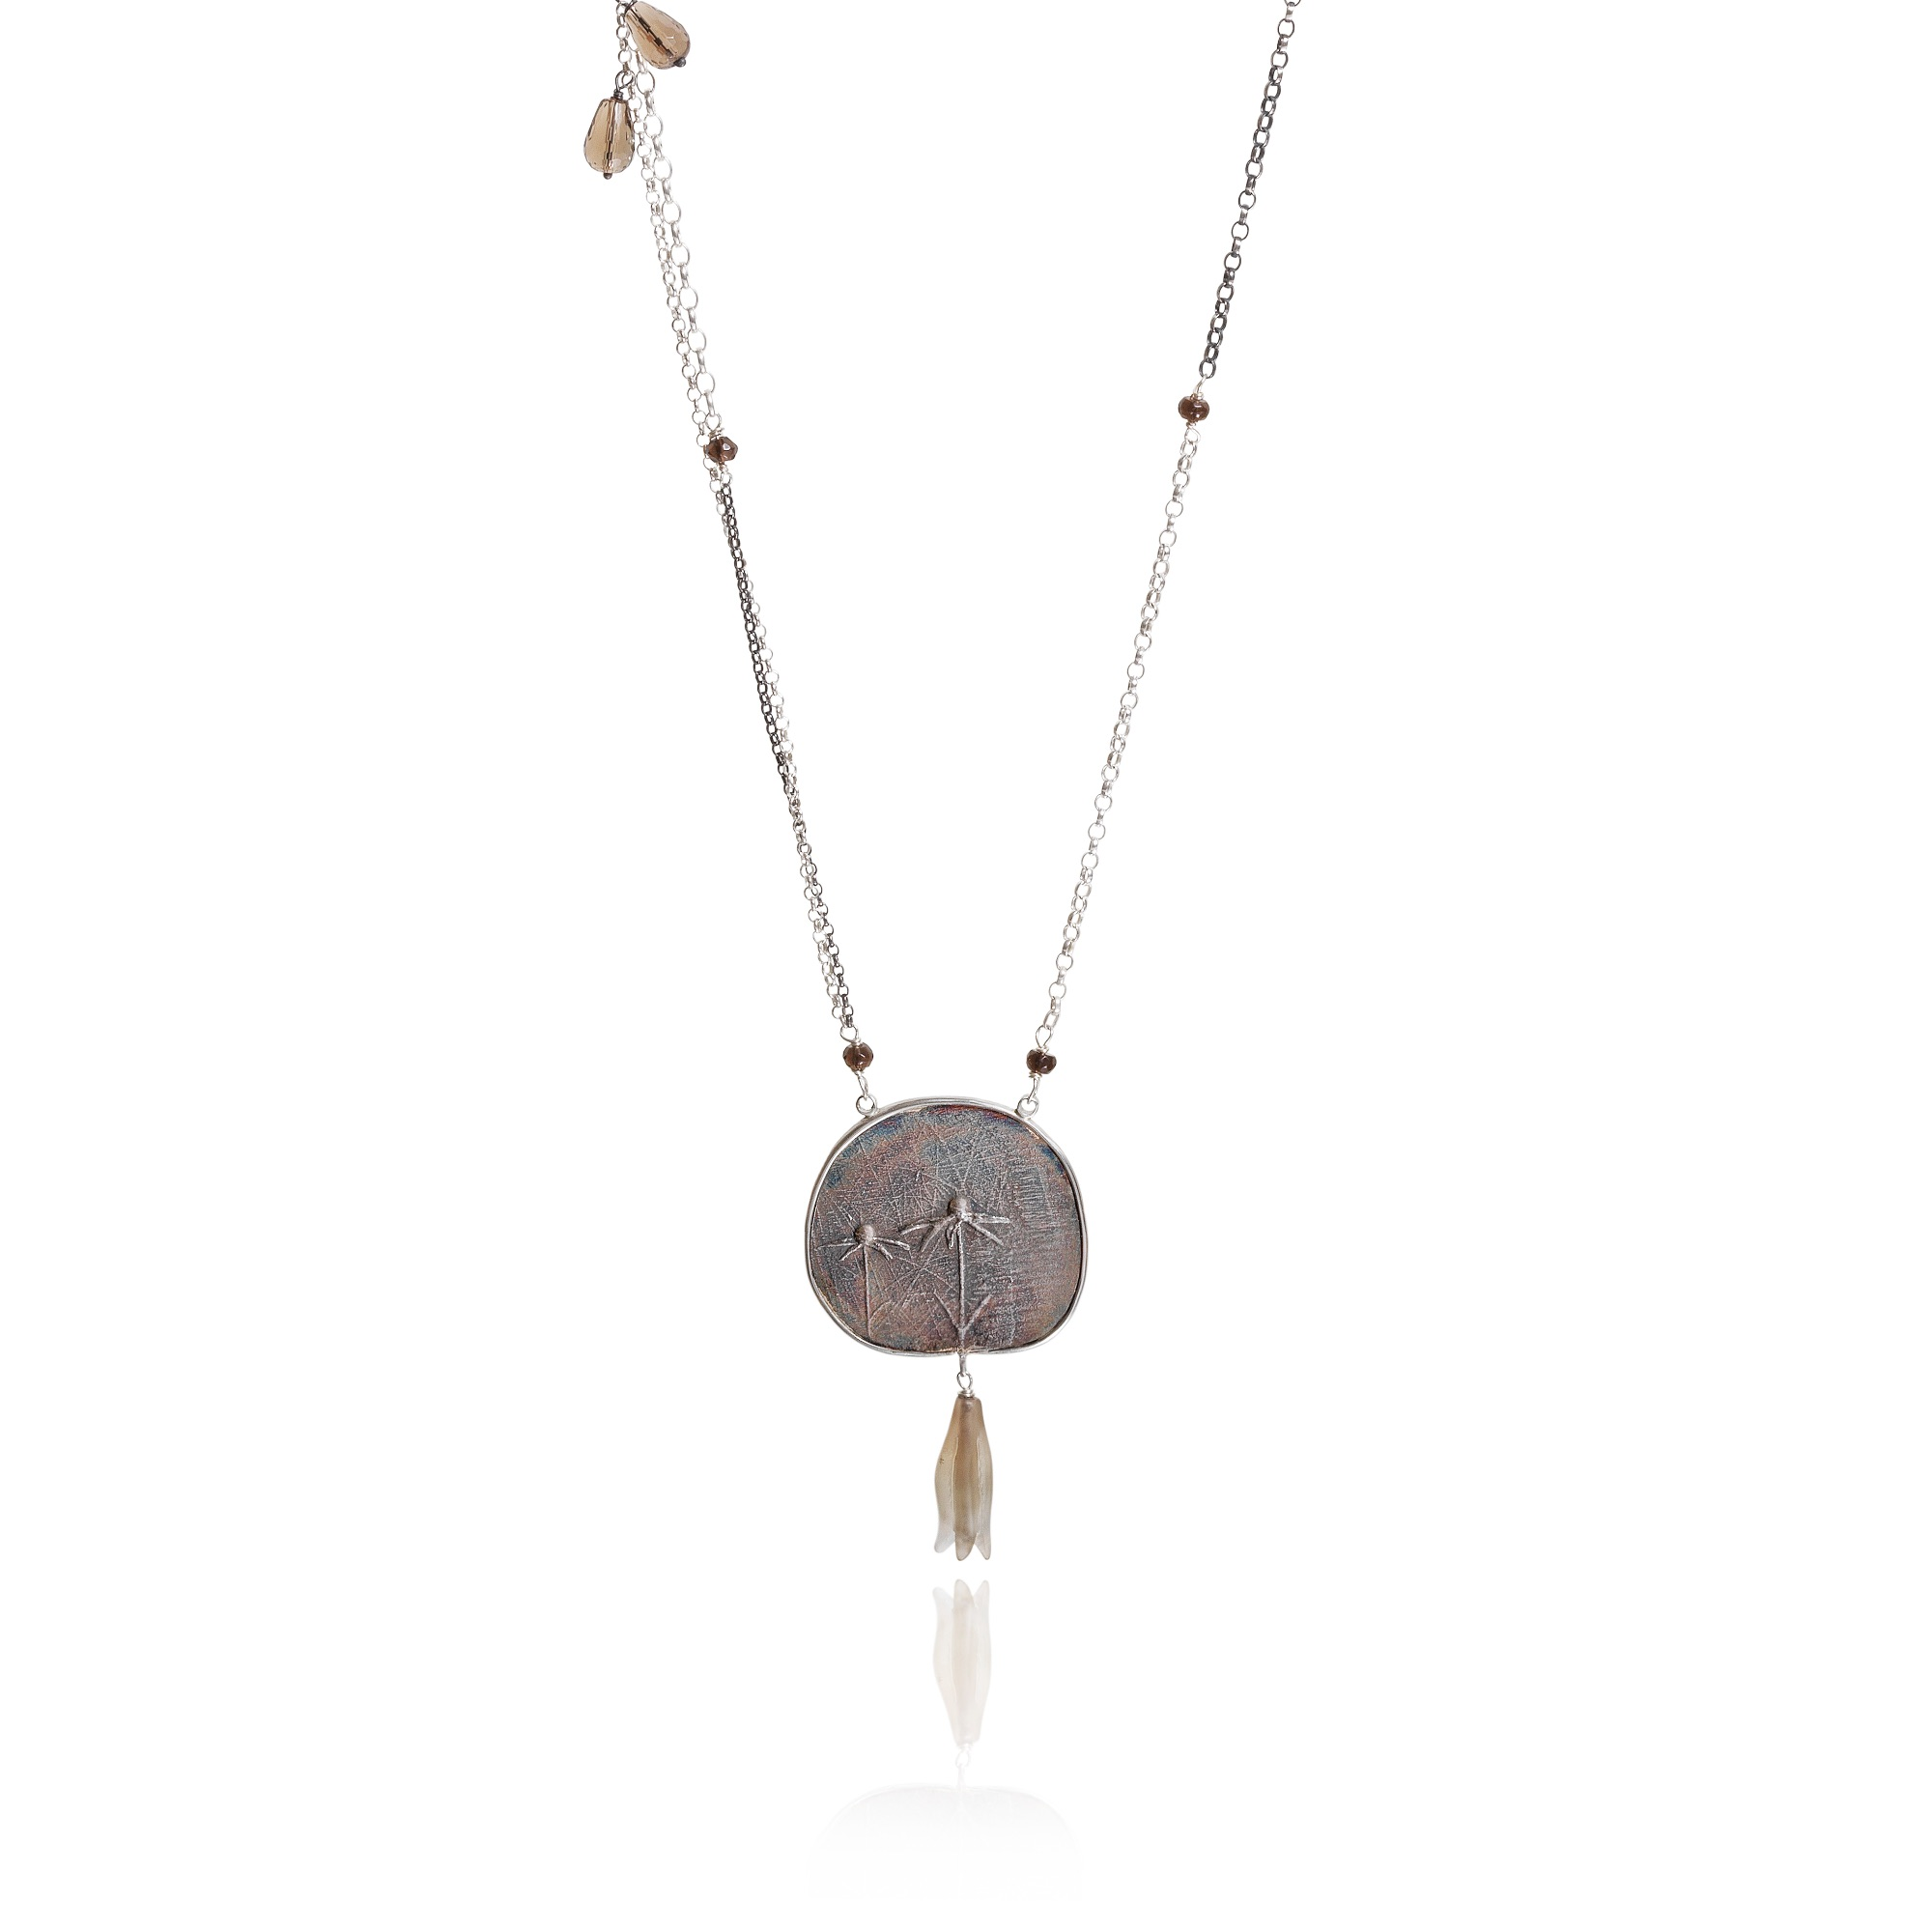 cathy-newell-price-Echinacea- necklace